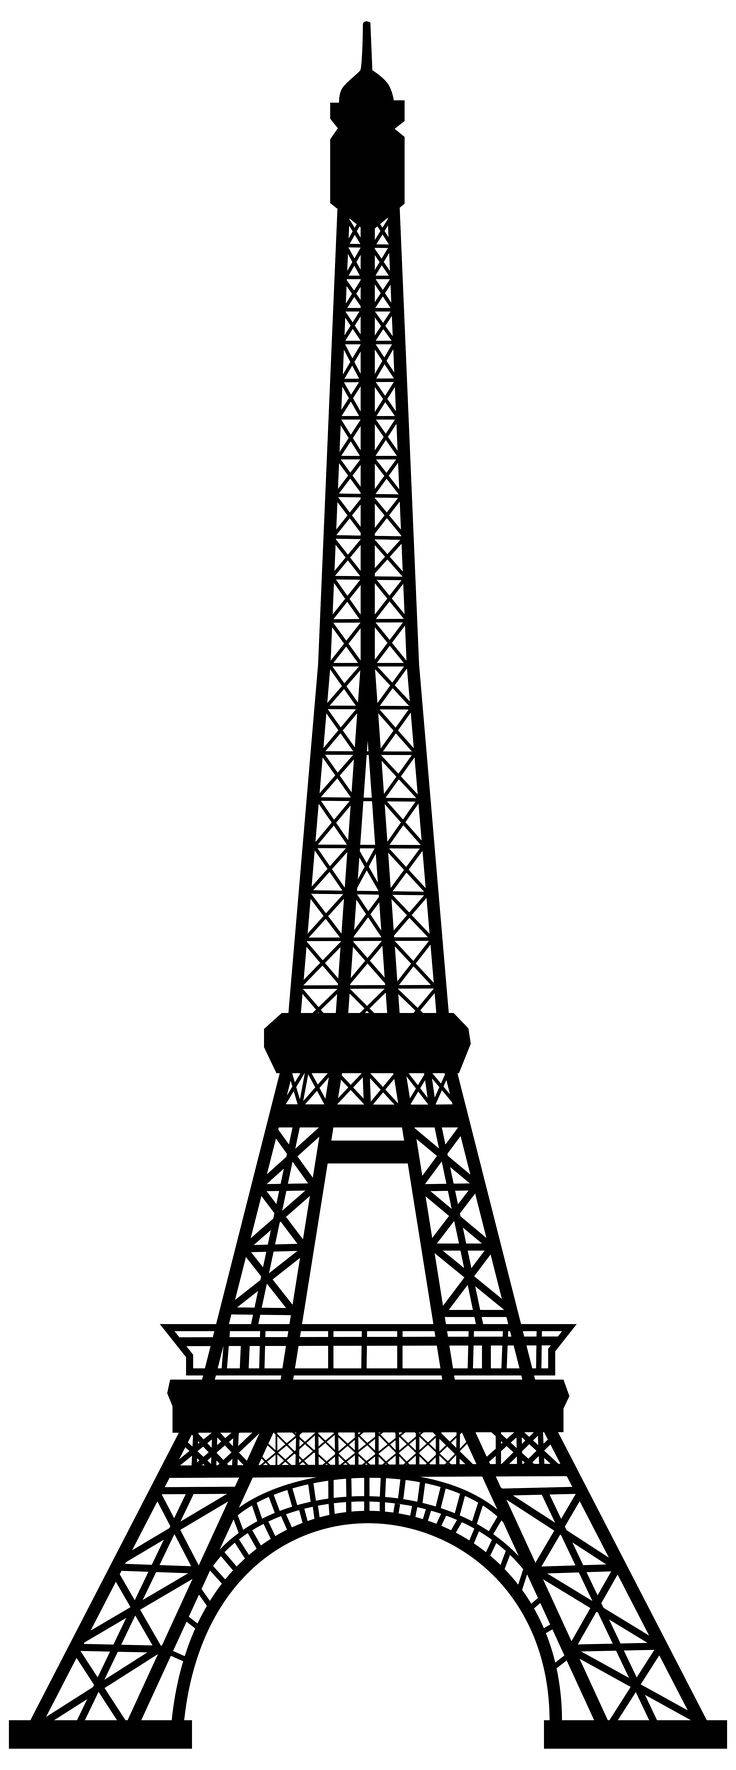 Best 25+ Eiffel Tower Art Ideas On Pinterest | Eiffel Tower In 2017 Eiffel Tower Metal Wall Art (View 12 of 30)